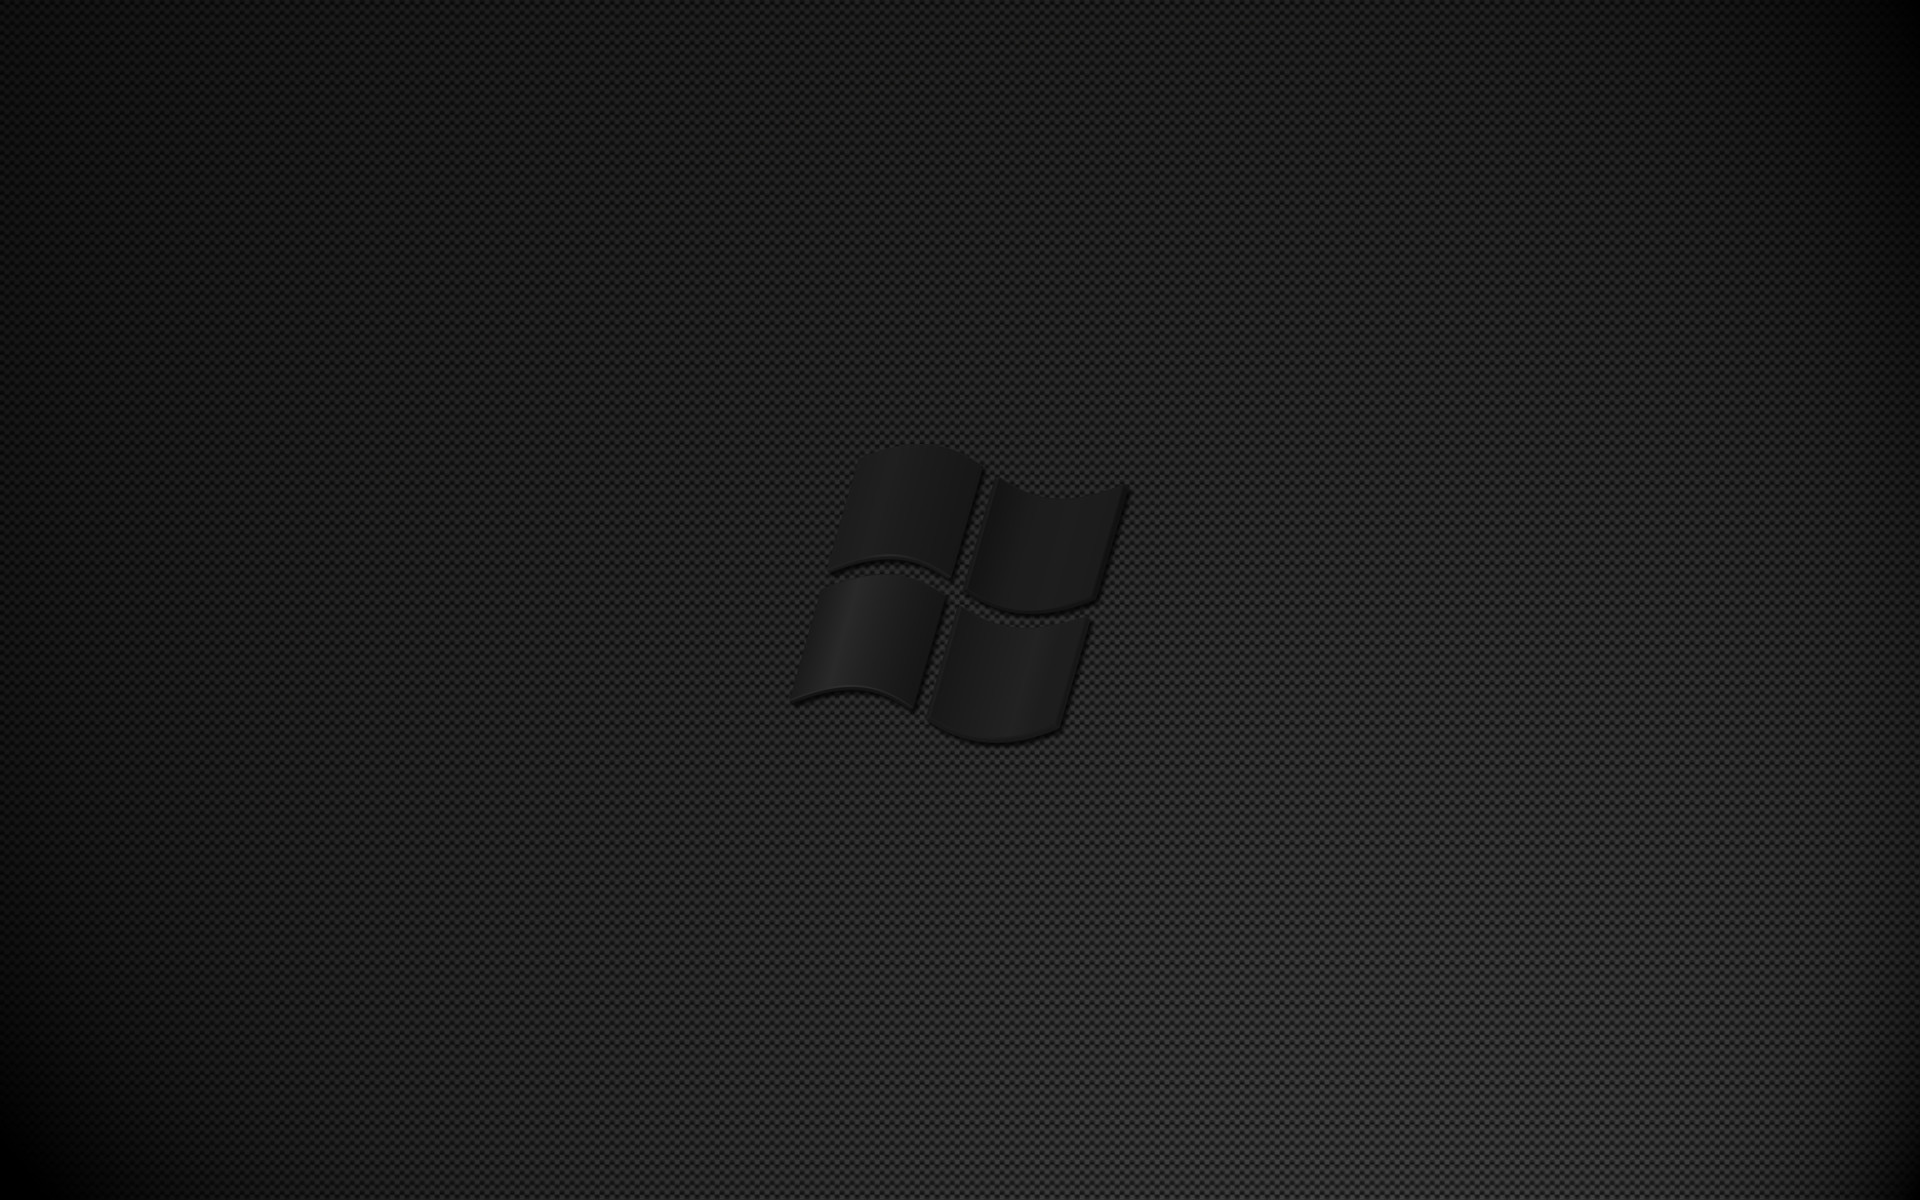 Black Windows 7 Wallpaper Hd 82 Images